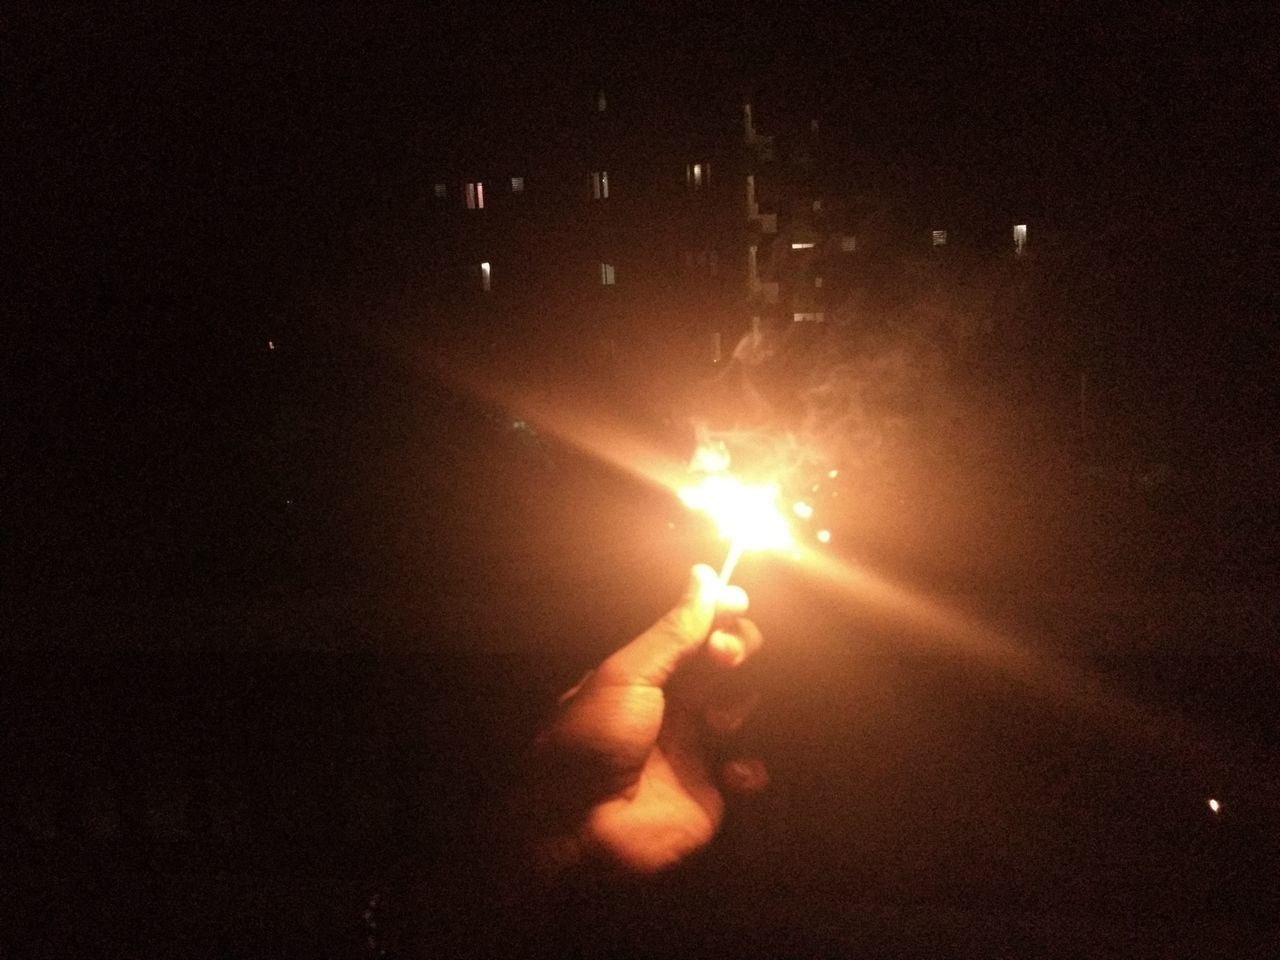 illuminated, real people, night, one person, leisure activity, human hand, lifestyles, outdoors, men, close-up, people